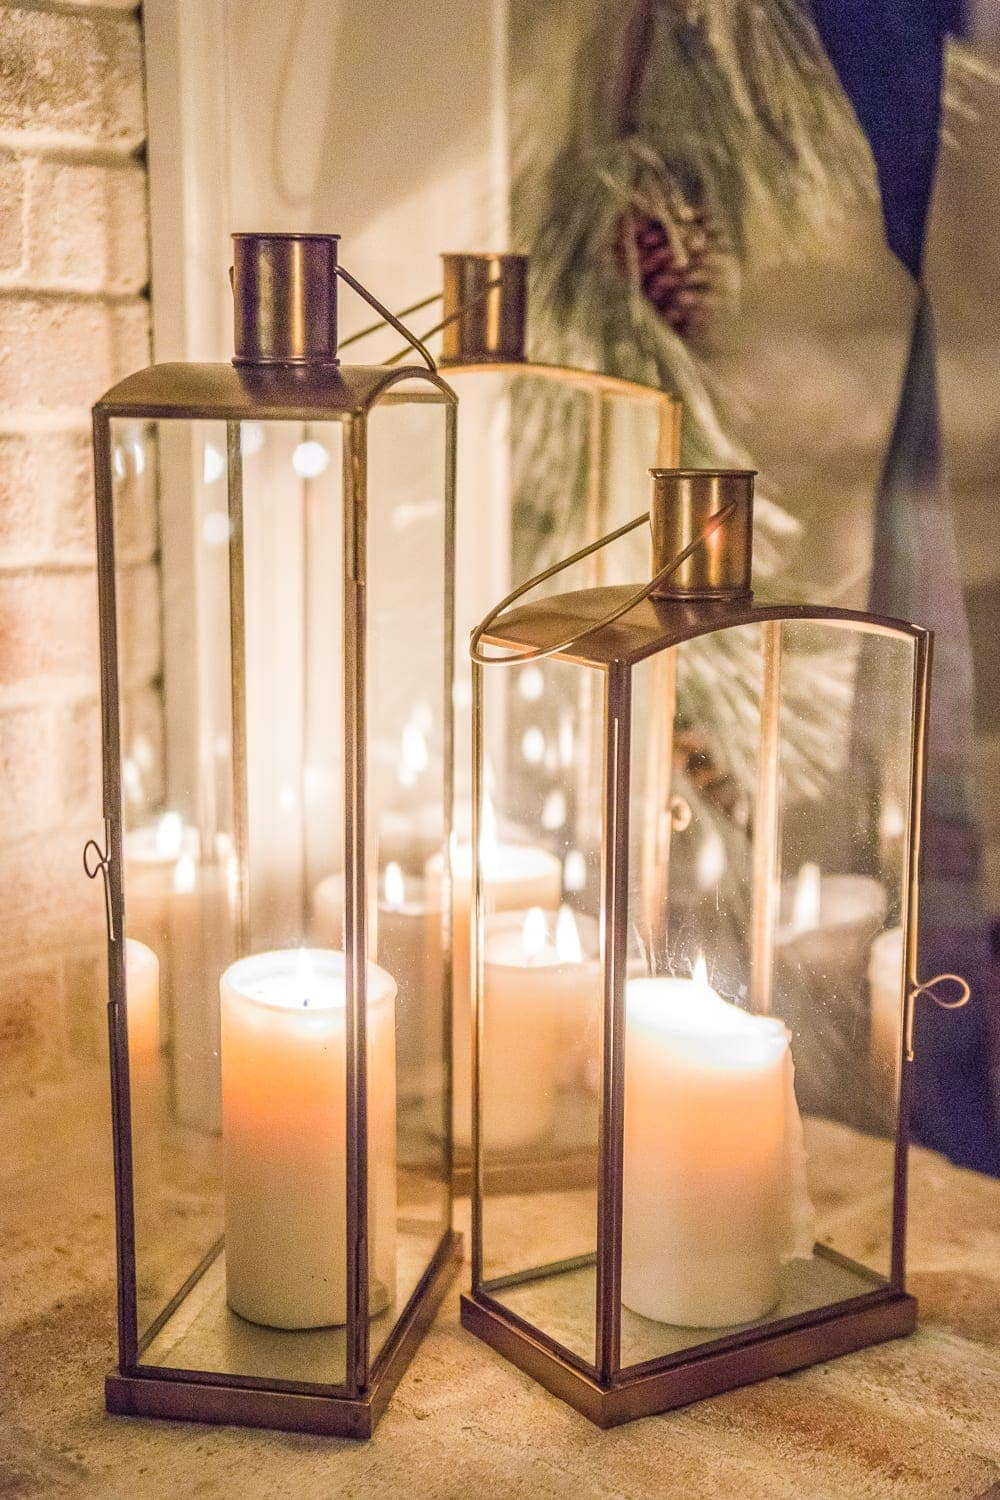 Christmas Candlelight Night Tour | Lanterns on hearth